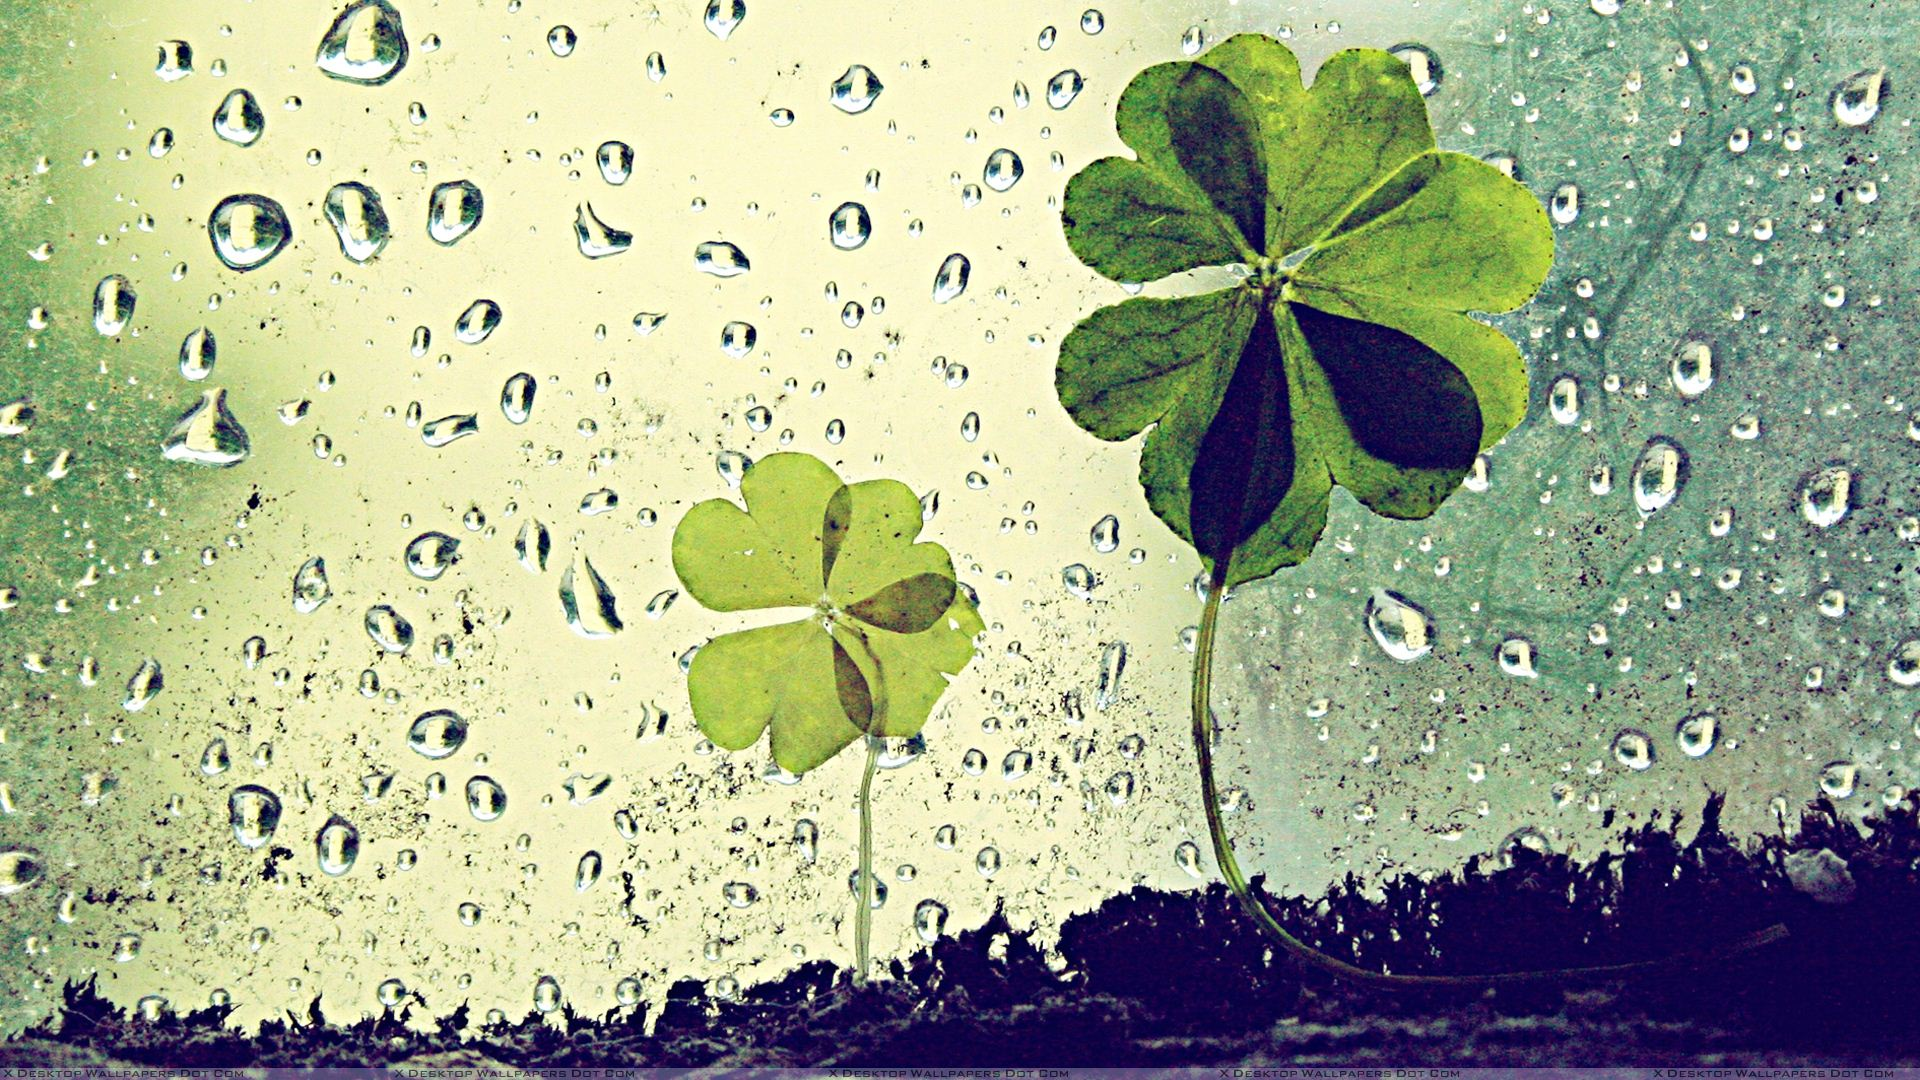 green artistic leaves and waterdrops wallpaper